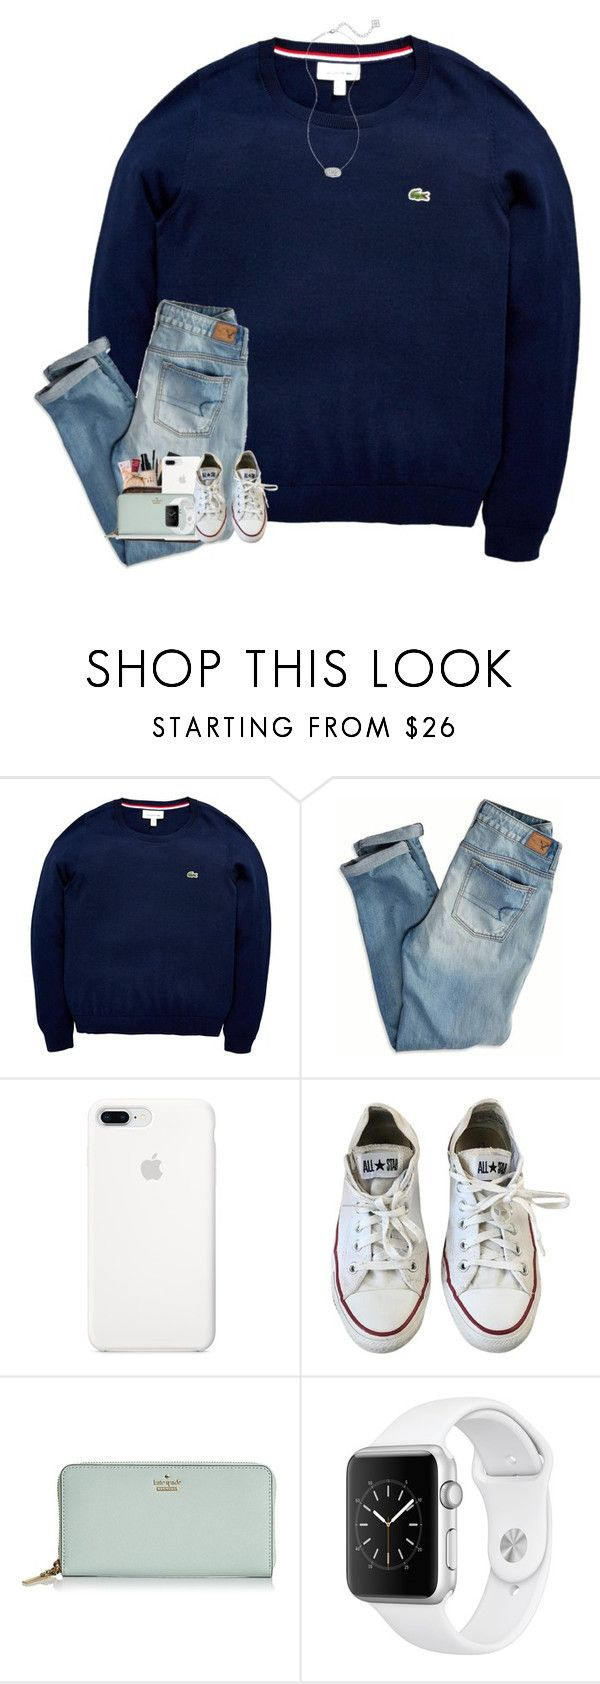 """""""save me✝️"""" by hokieprepster ❤ liked on Polyvore featuring Lacoste, American Eagle Outfitters, Converse, Kate Spade and Kendra Scott"""